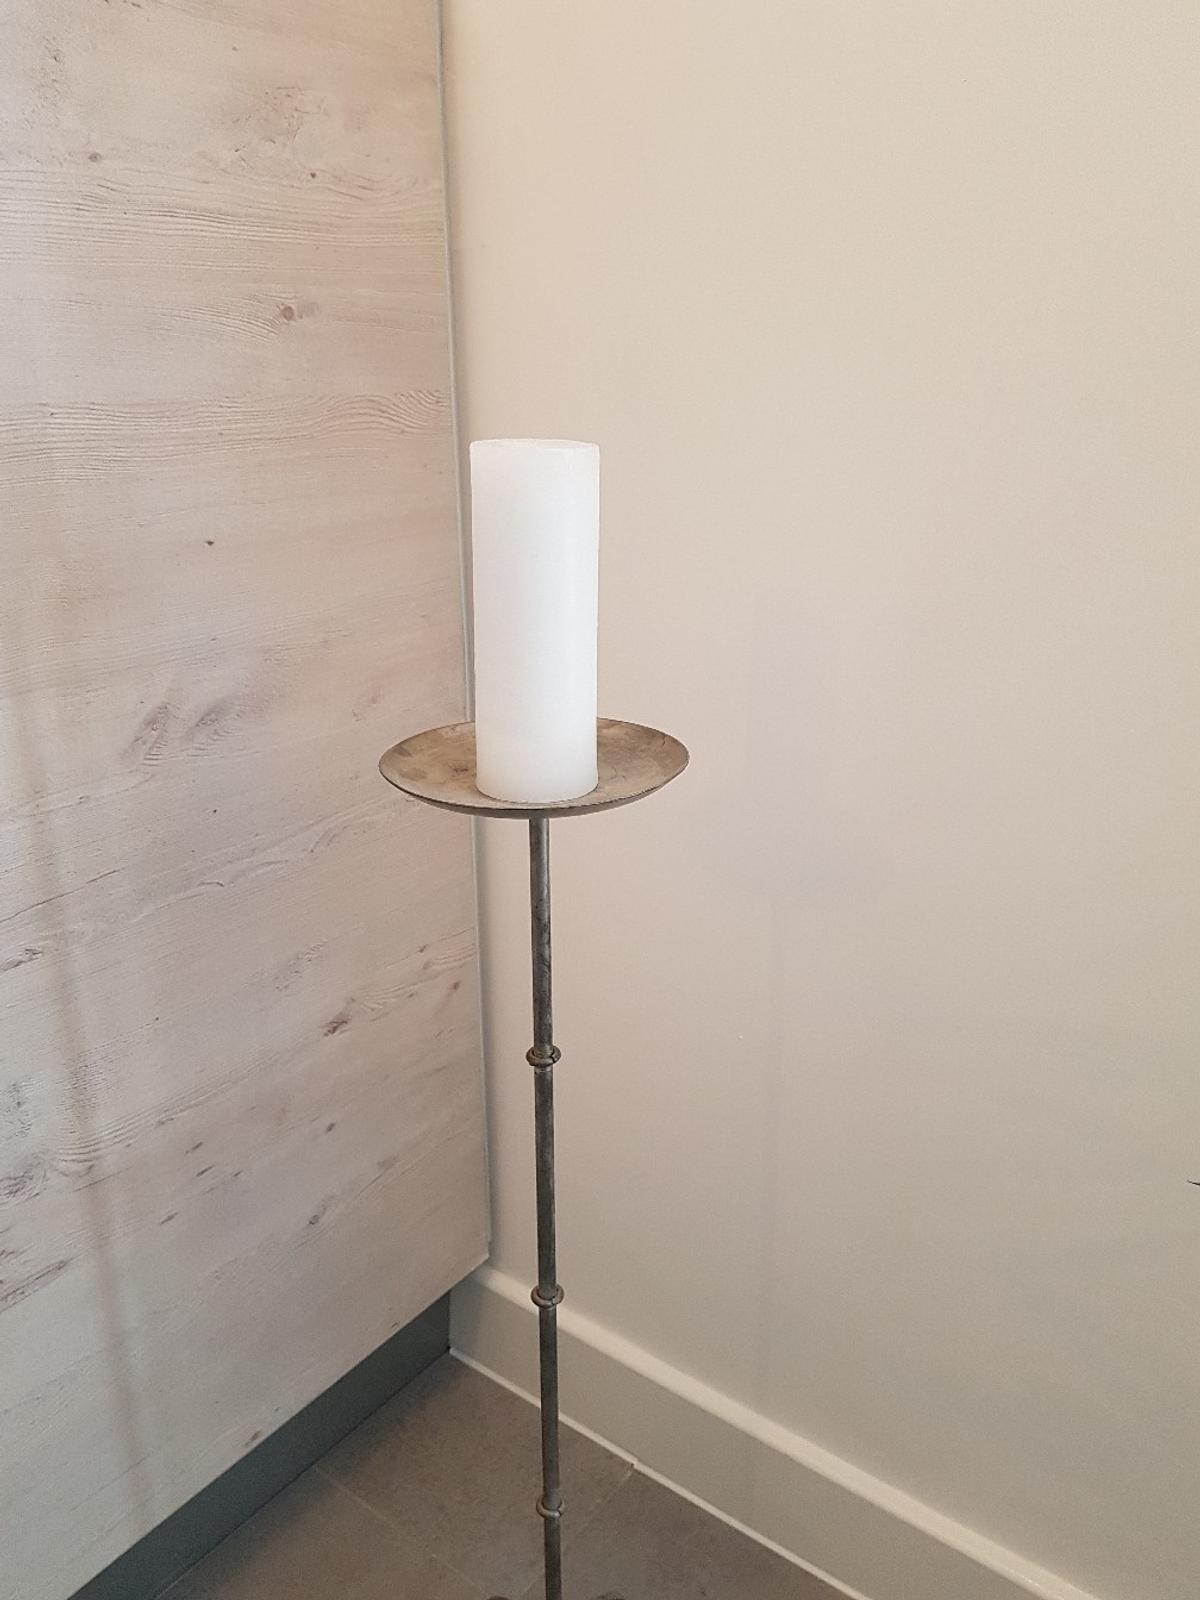 Wrought Iron Tall Candle Holder In Wf10 Wakefield For 17 00 For Sale Shpock